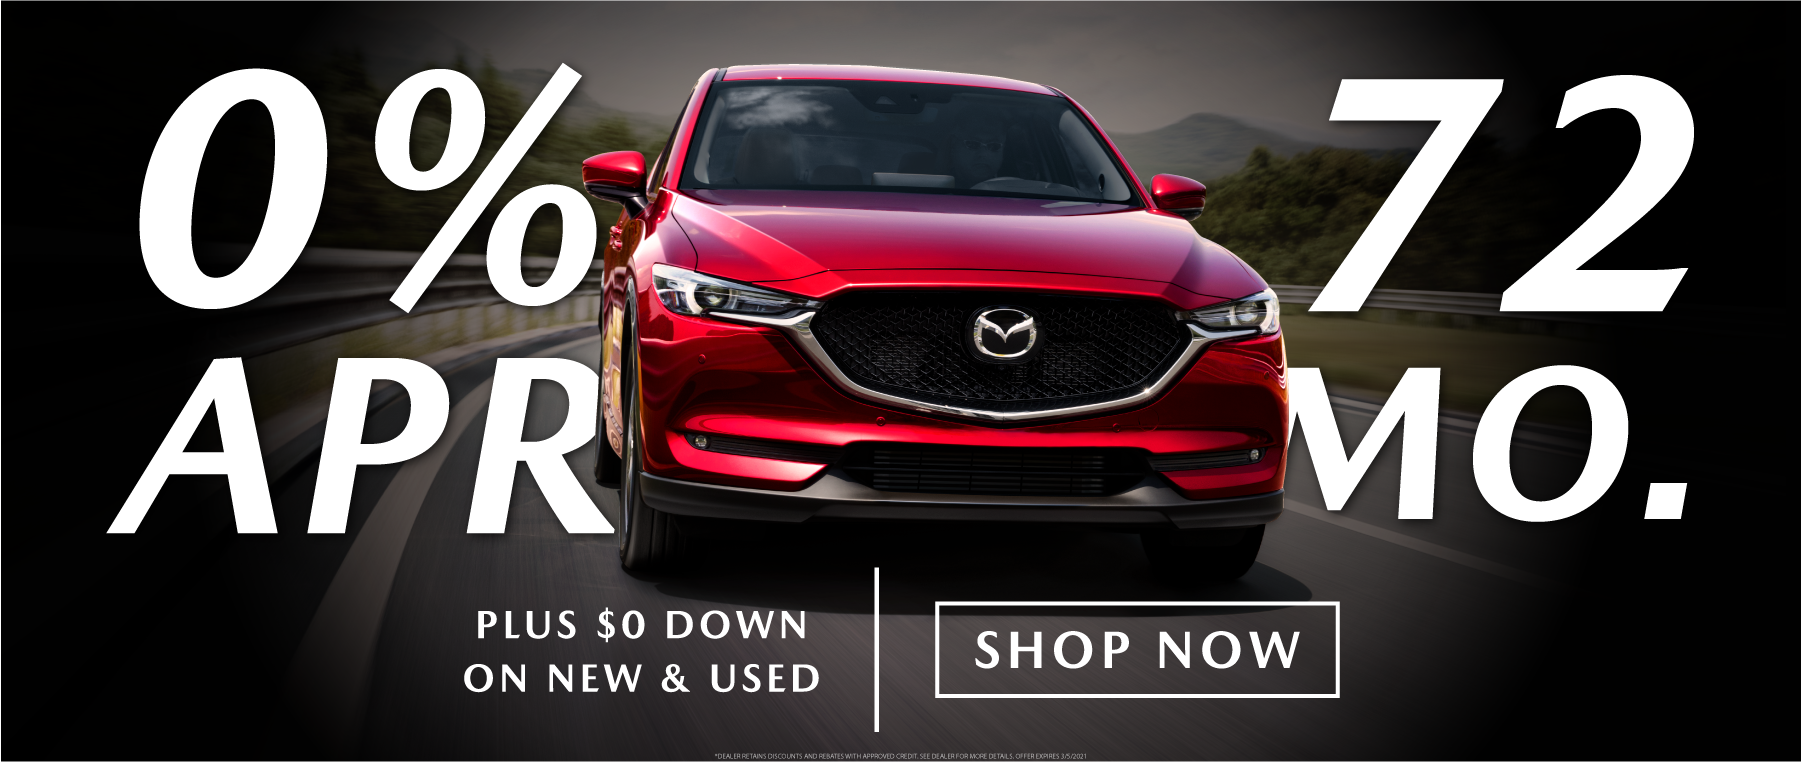 0% APR for 72 Months and $0 Down on New and Used Mazda